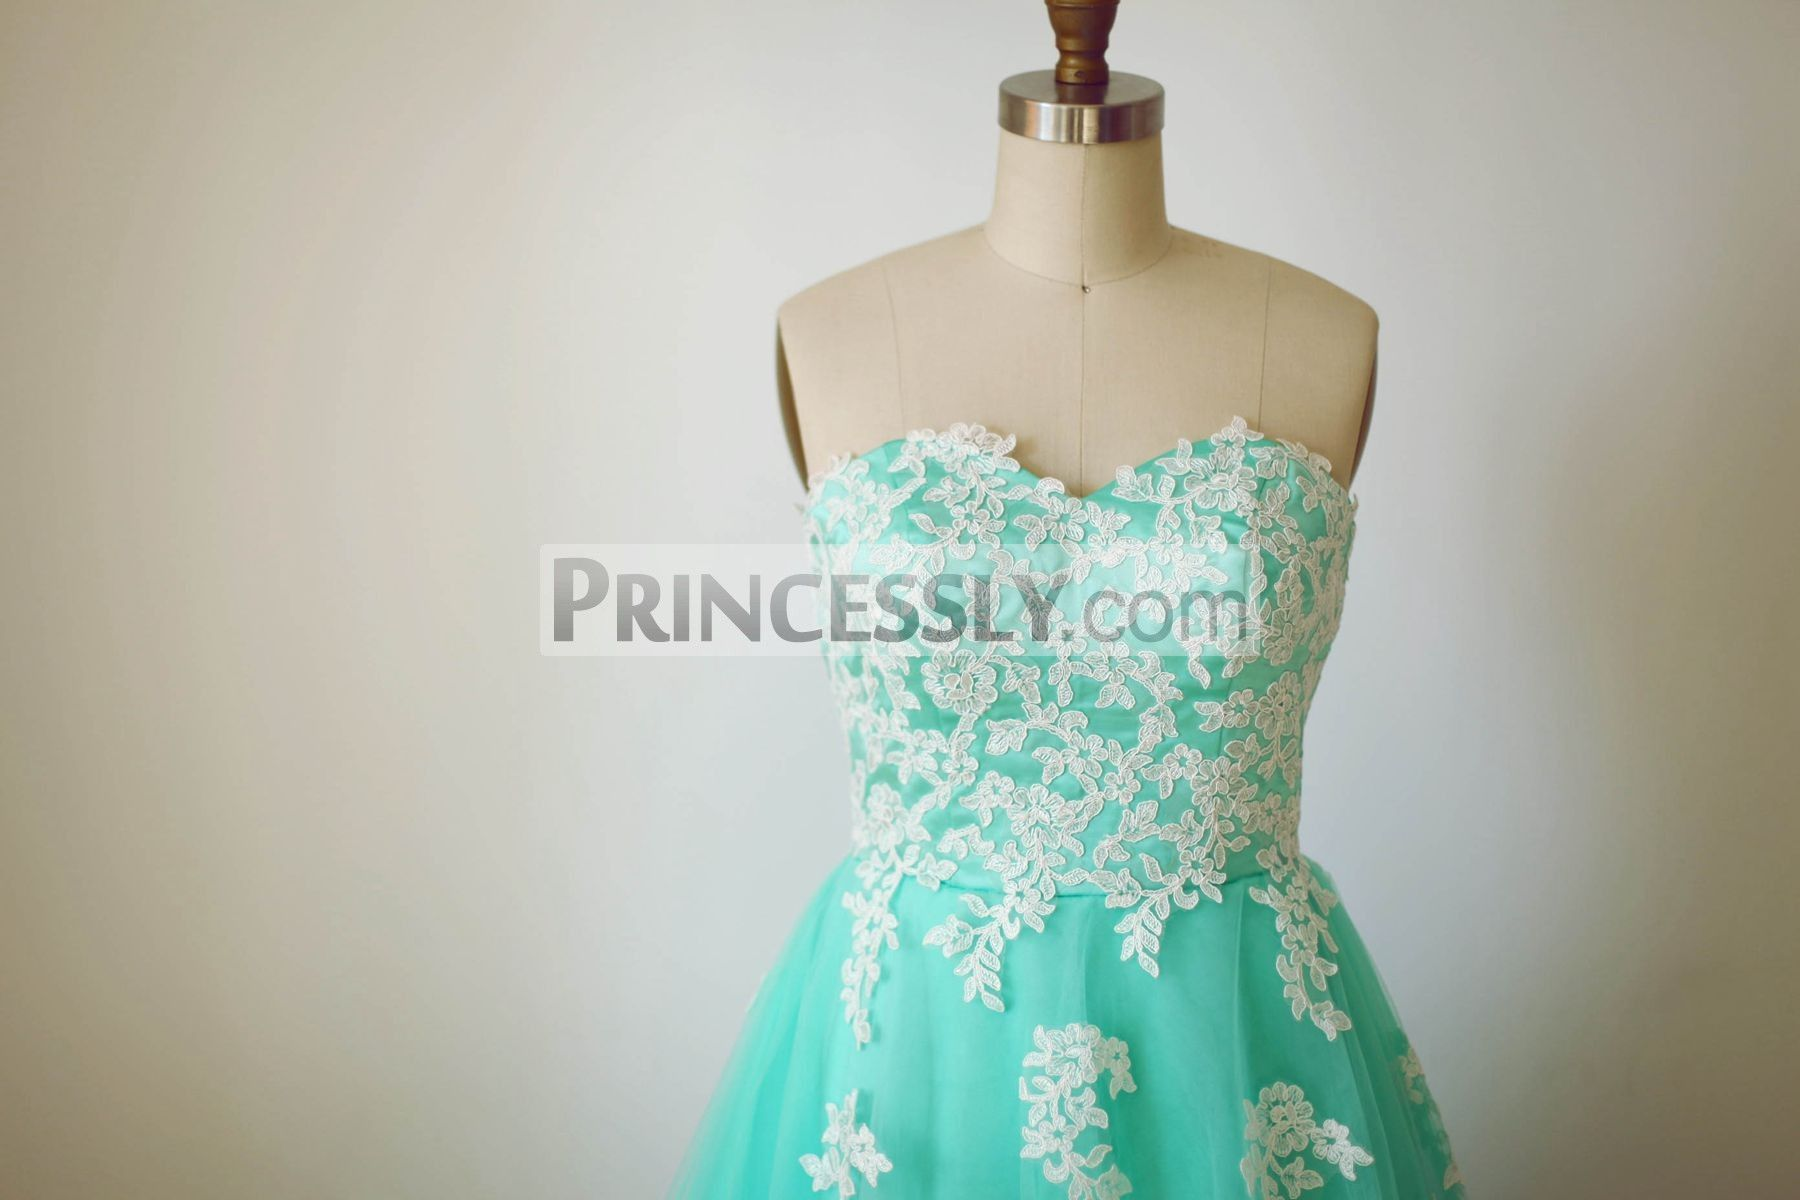 Strapless Sweetheart Mint Blue Tulle Lace Tea Length Short Wedding ...